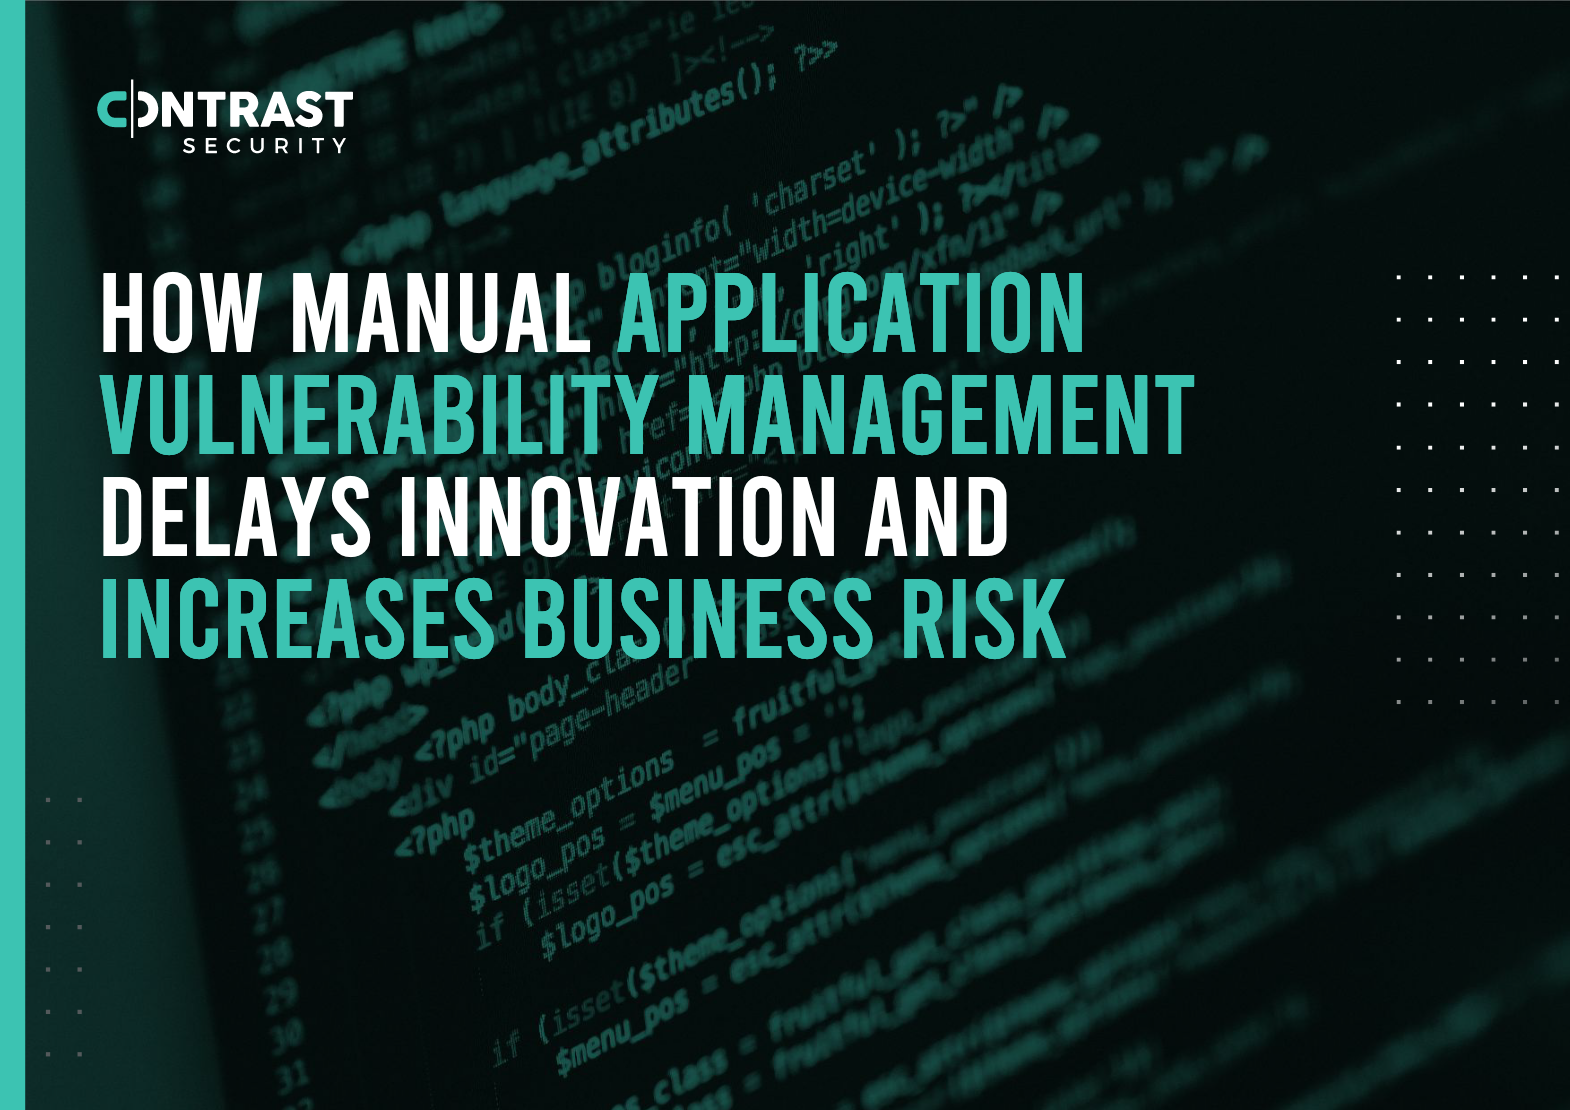 Screenshot 2020 09 25 How Manual Application Vulnerability Management Delays Innovation And Increases Business Risk eBook 0... - HOW MANUAL APPLICATION VULNERABILITY MANAGEMENT DELAYS INNOVATION AND INCREASES BUSINESS RISK